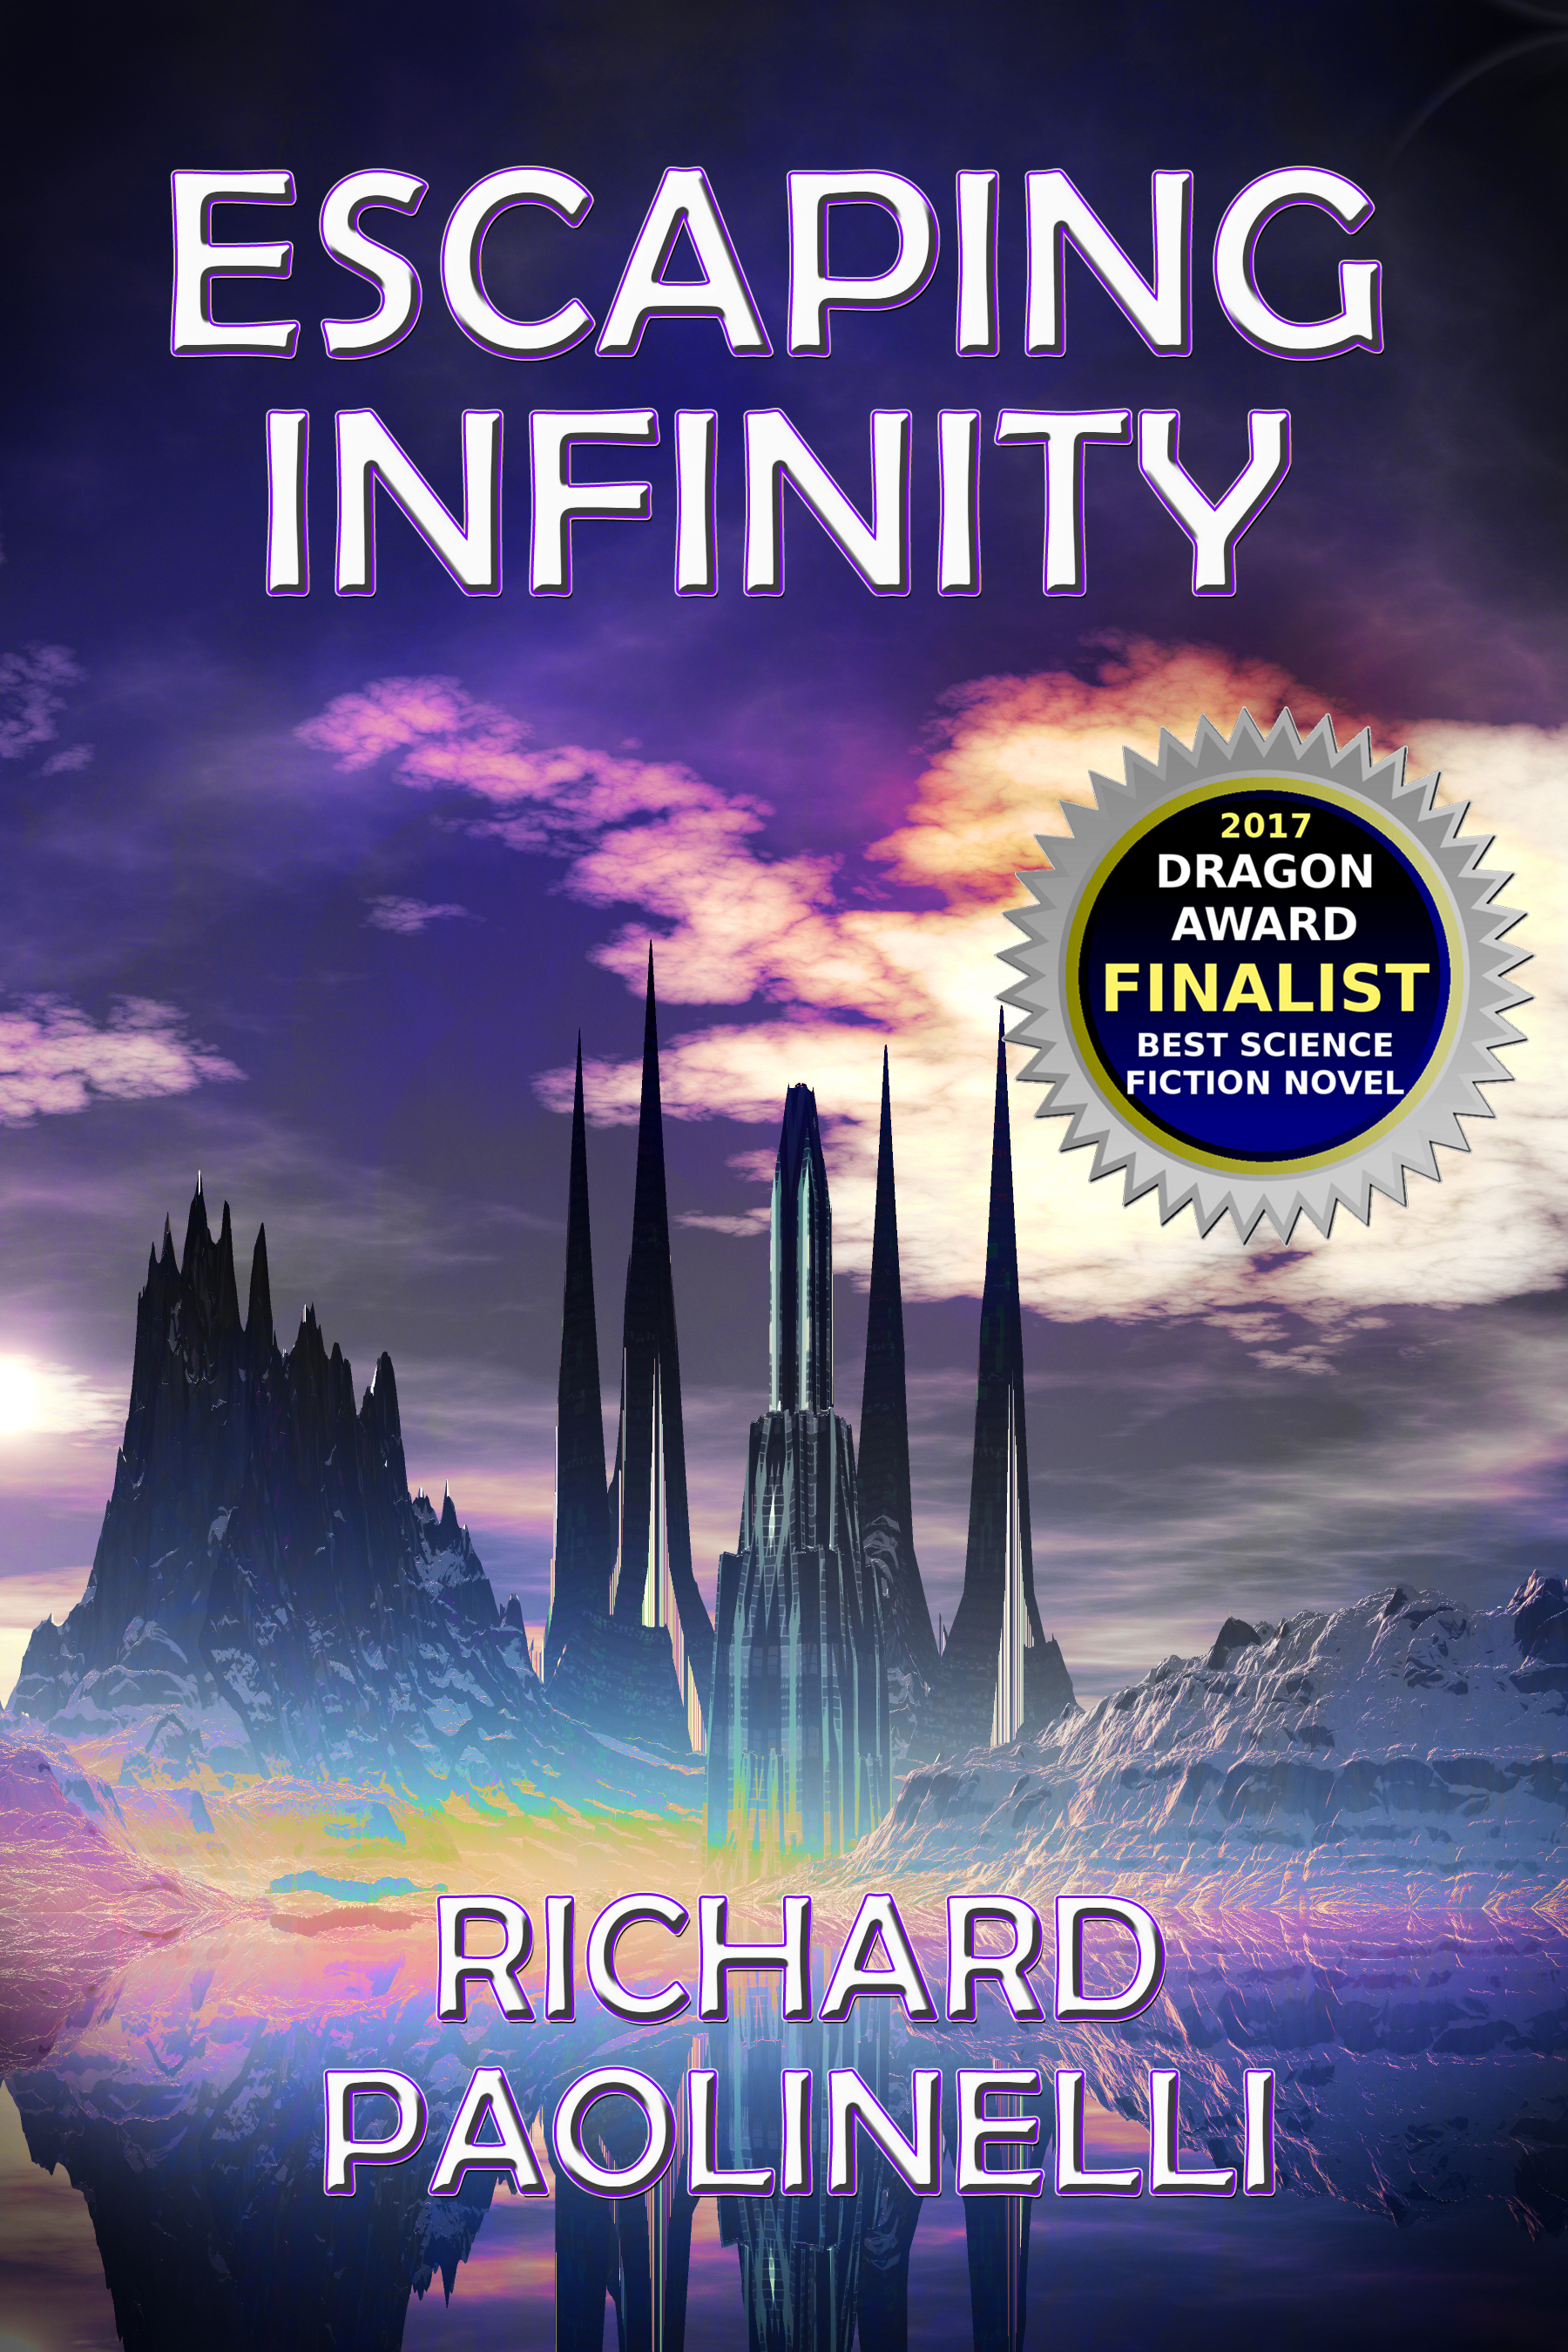 NEW_ESCAPING INFINITY_COVER copy